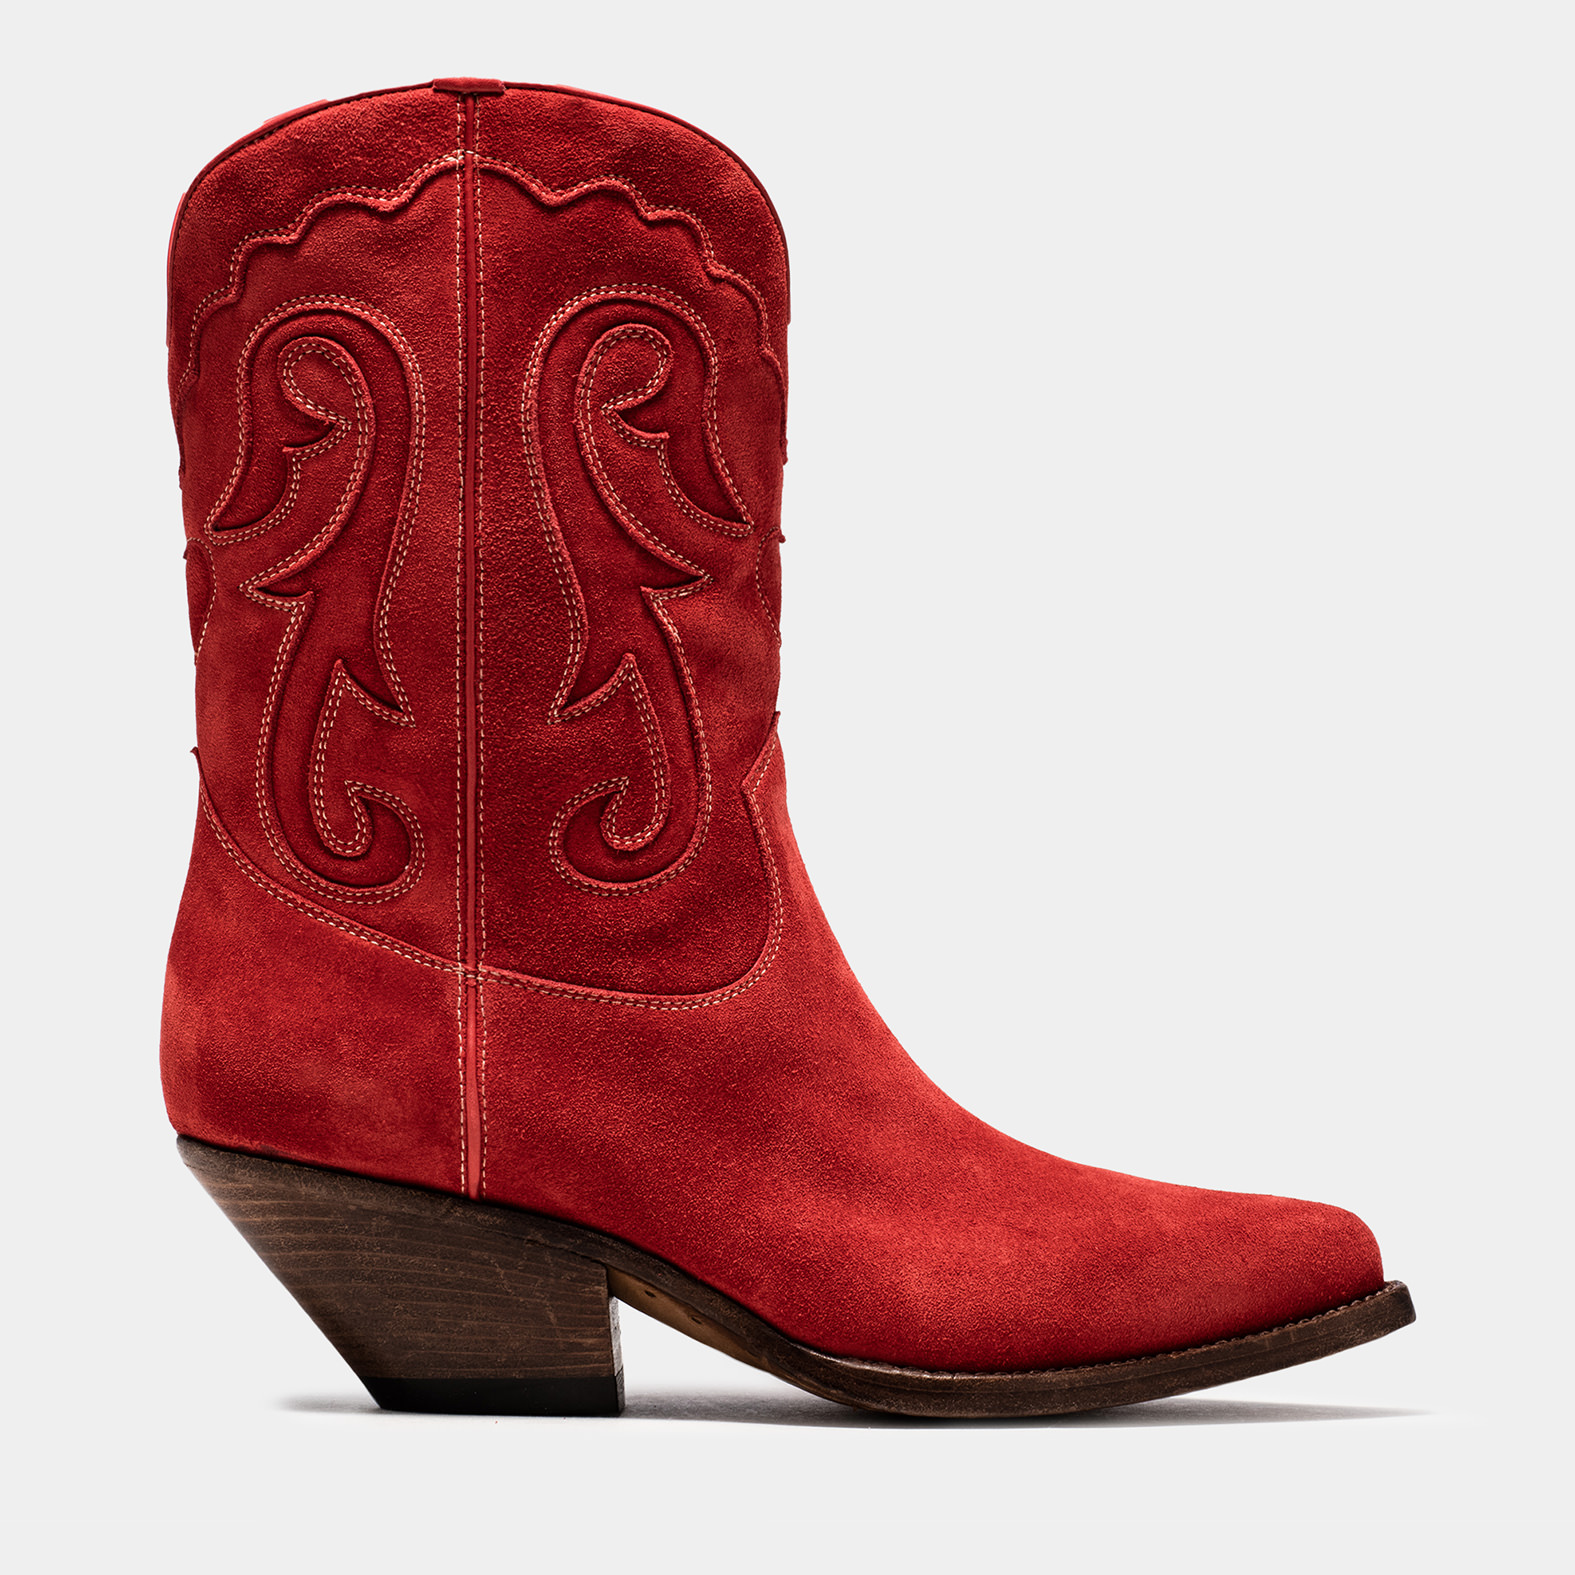 BUTTERO: ELISE MID TOP DURANGO BOOTS IN RUBY SUEDE